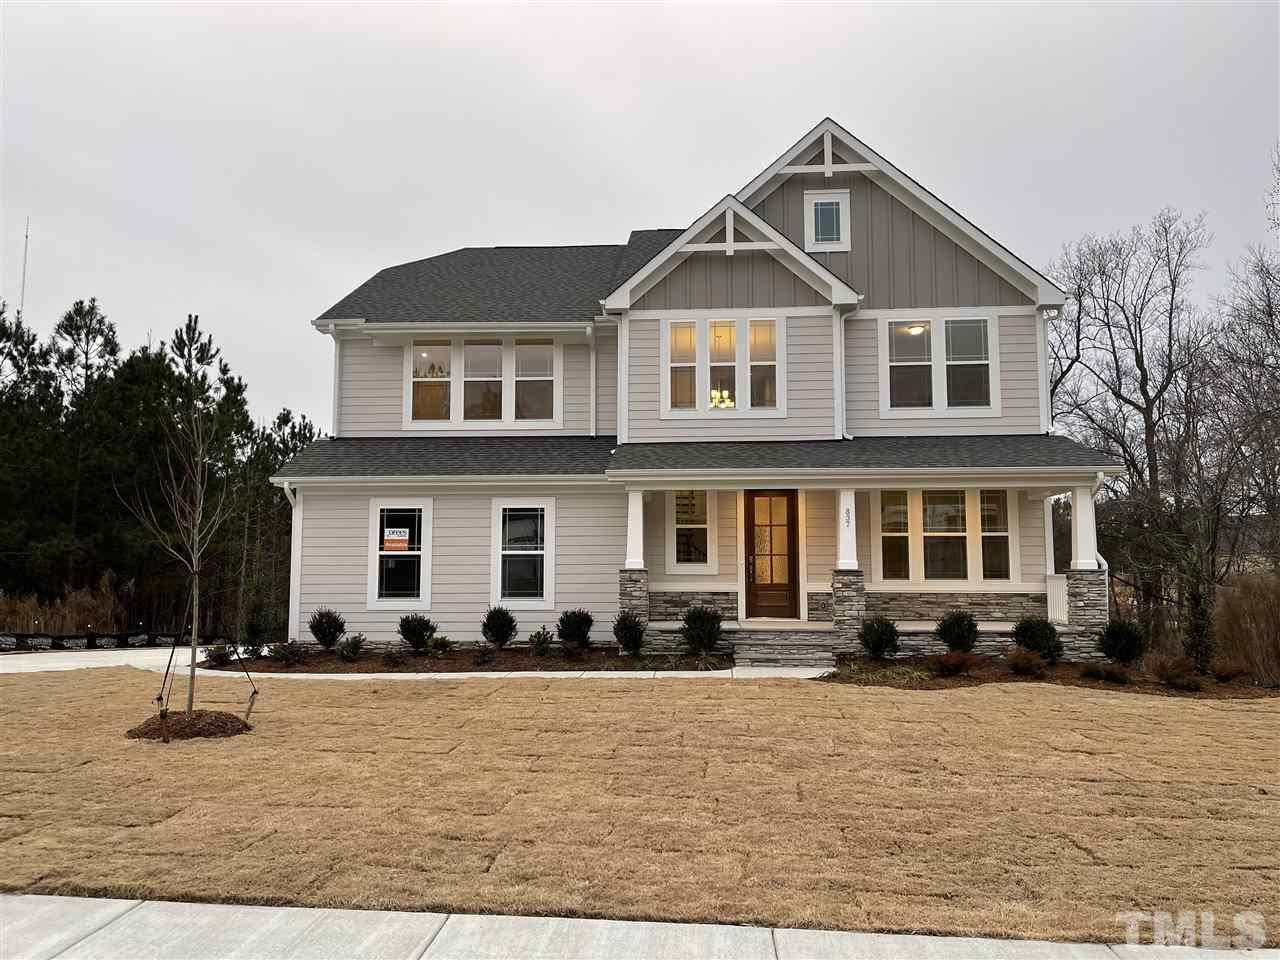 837 Flash Drive, Rolesville, NC 27571 - MLS#: 2340123